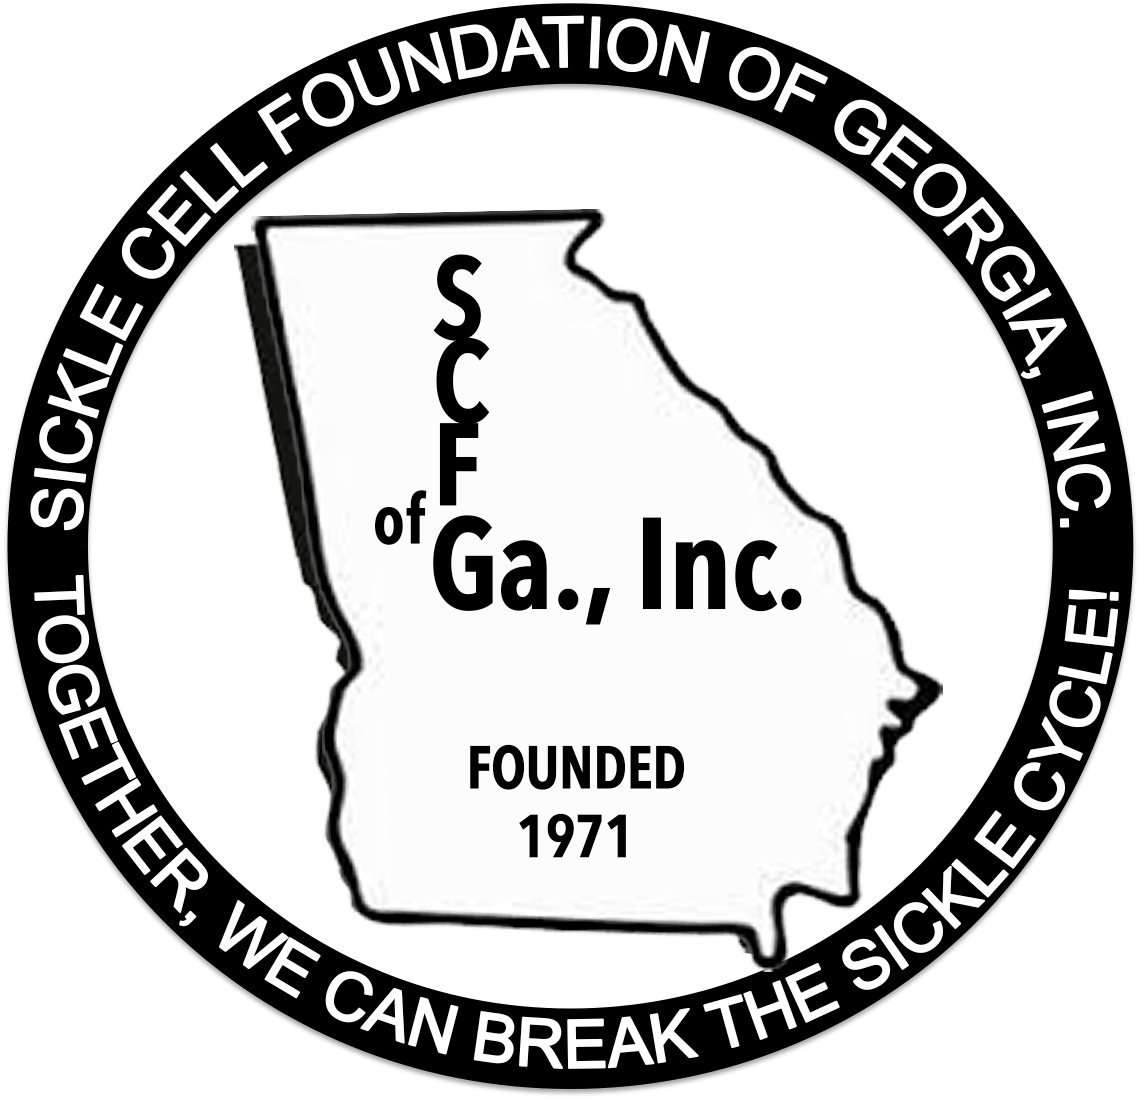 logo - sickle cell foundation